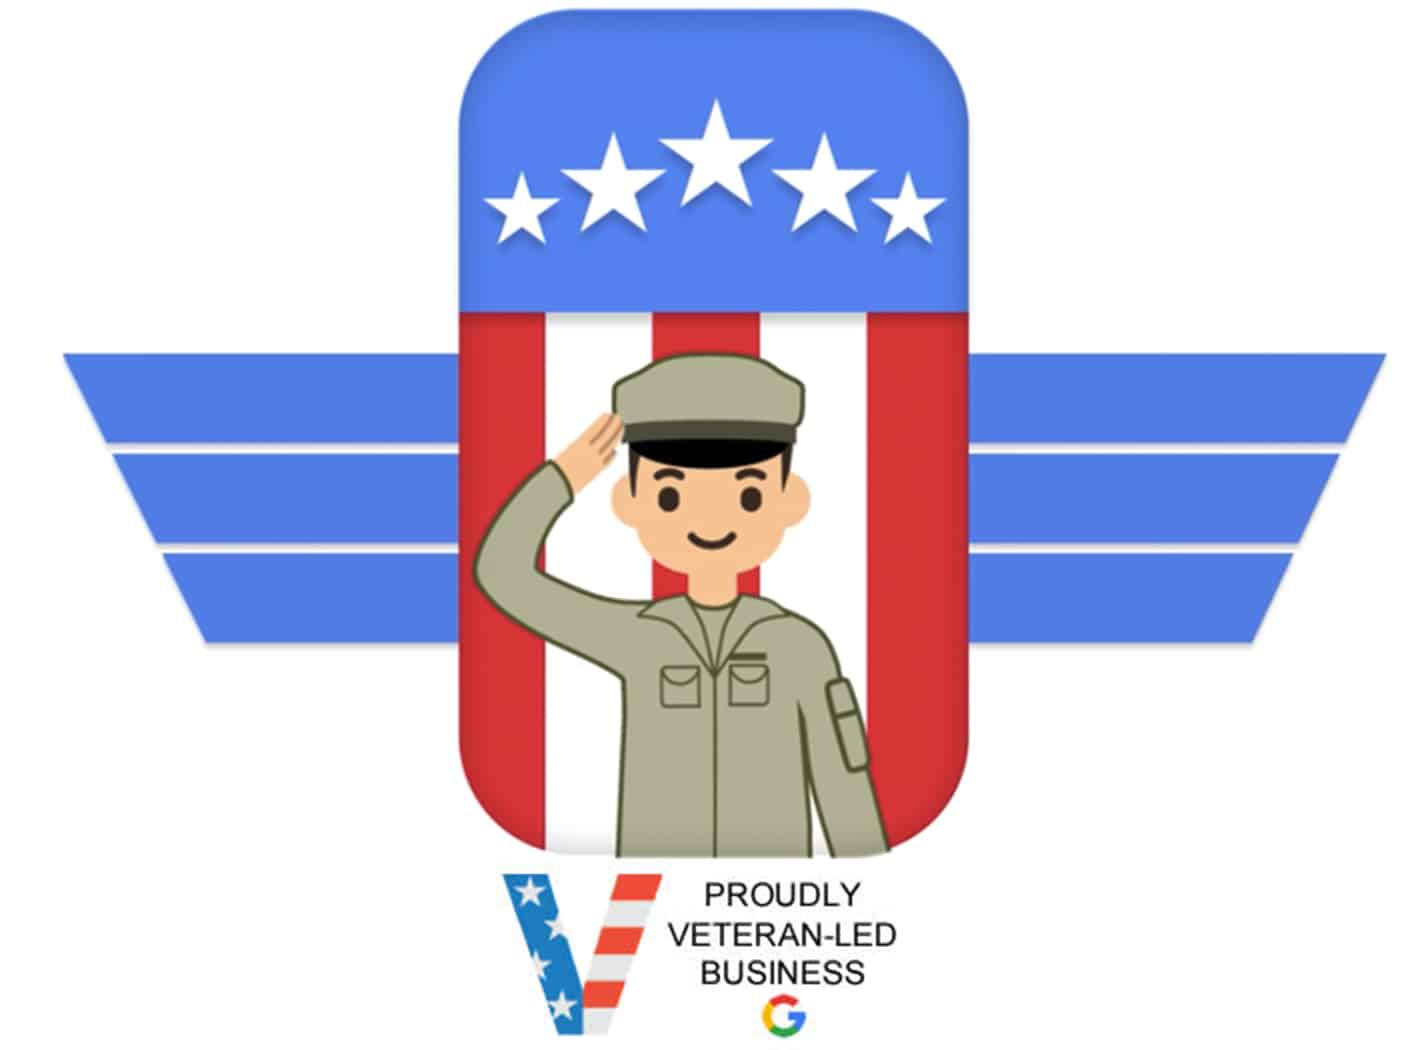 Veteran-Led Business